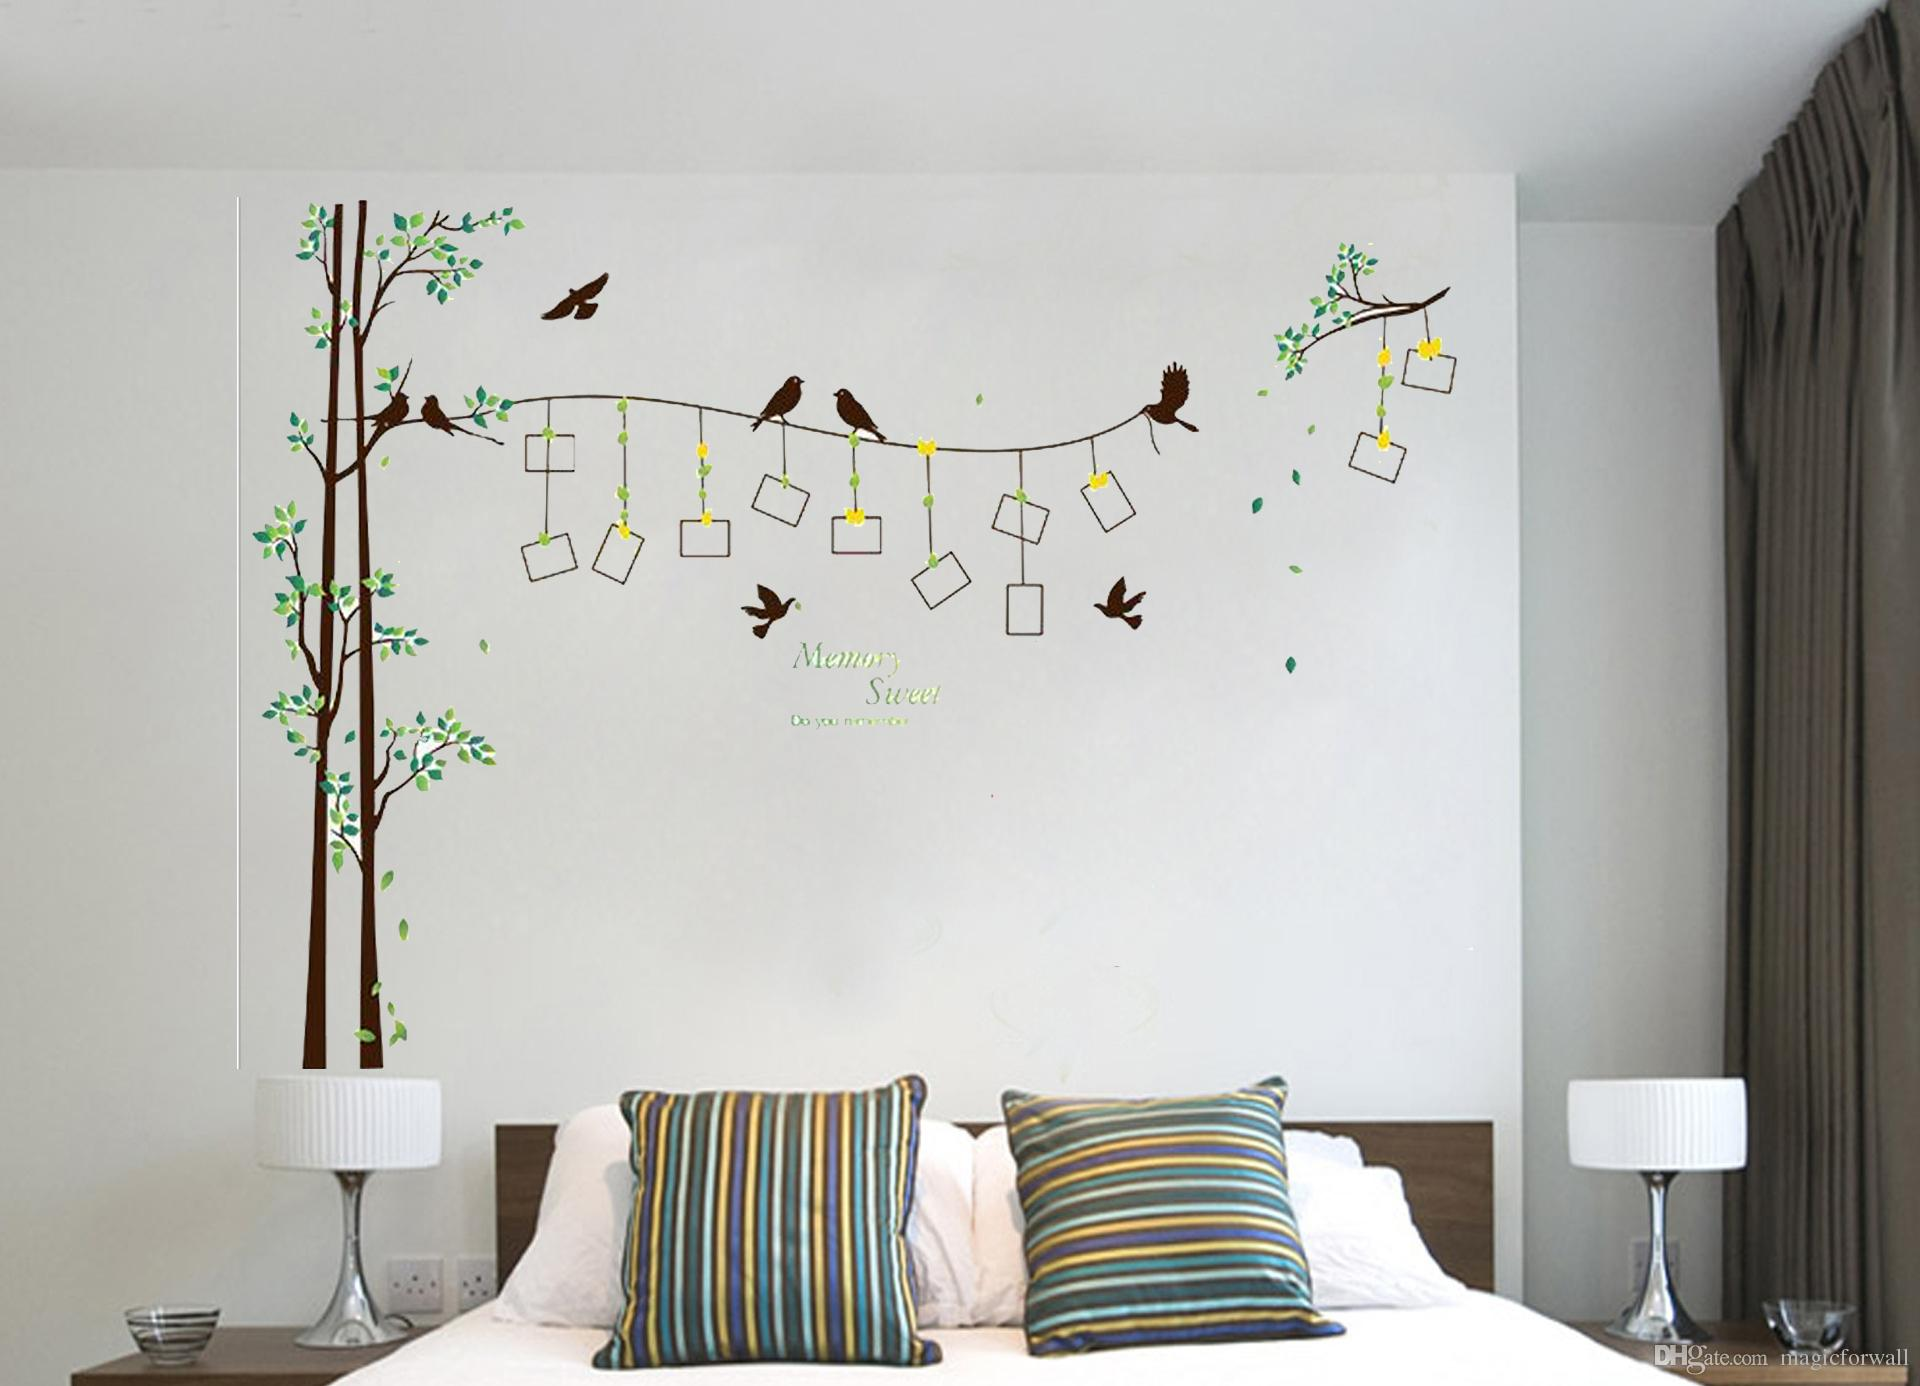 Birds on the Tree Picture Frame Wall Decal Home Decor Wallpaper Poster Headboard TV Background Wall Sticker Memory Sweet Quote